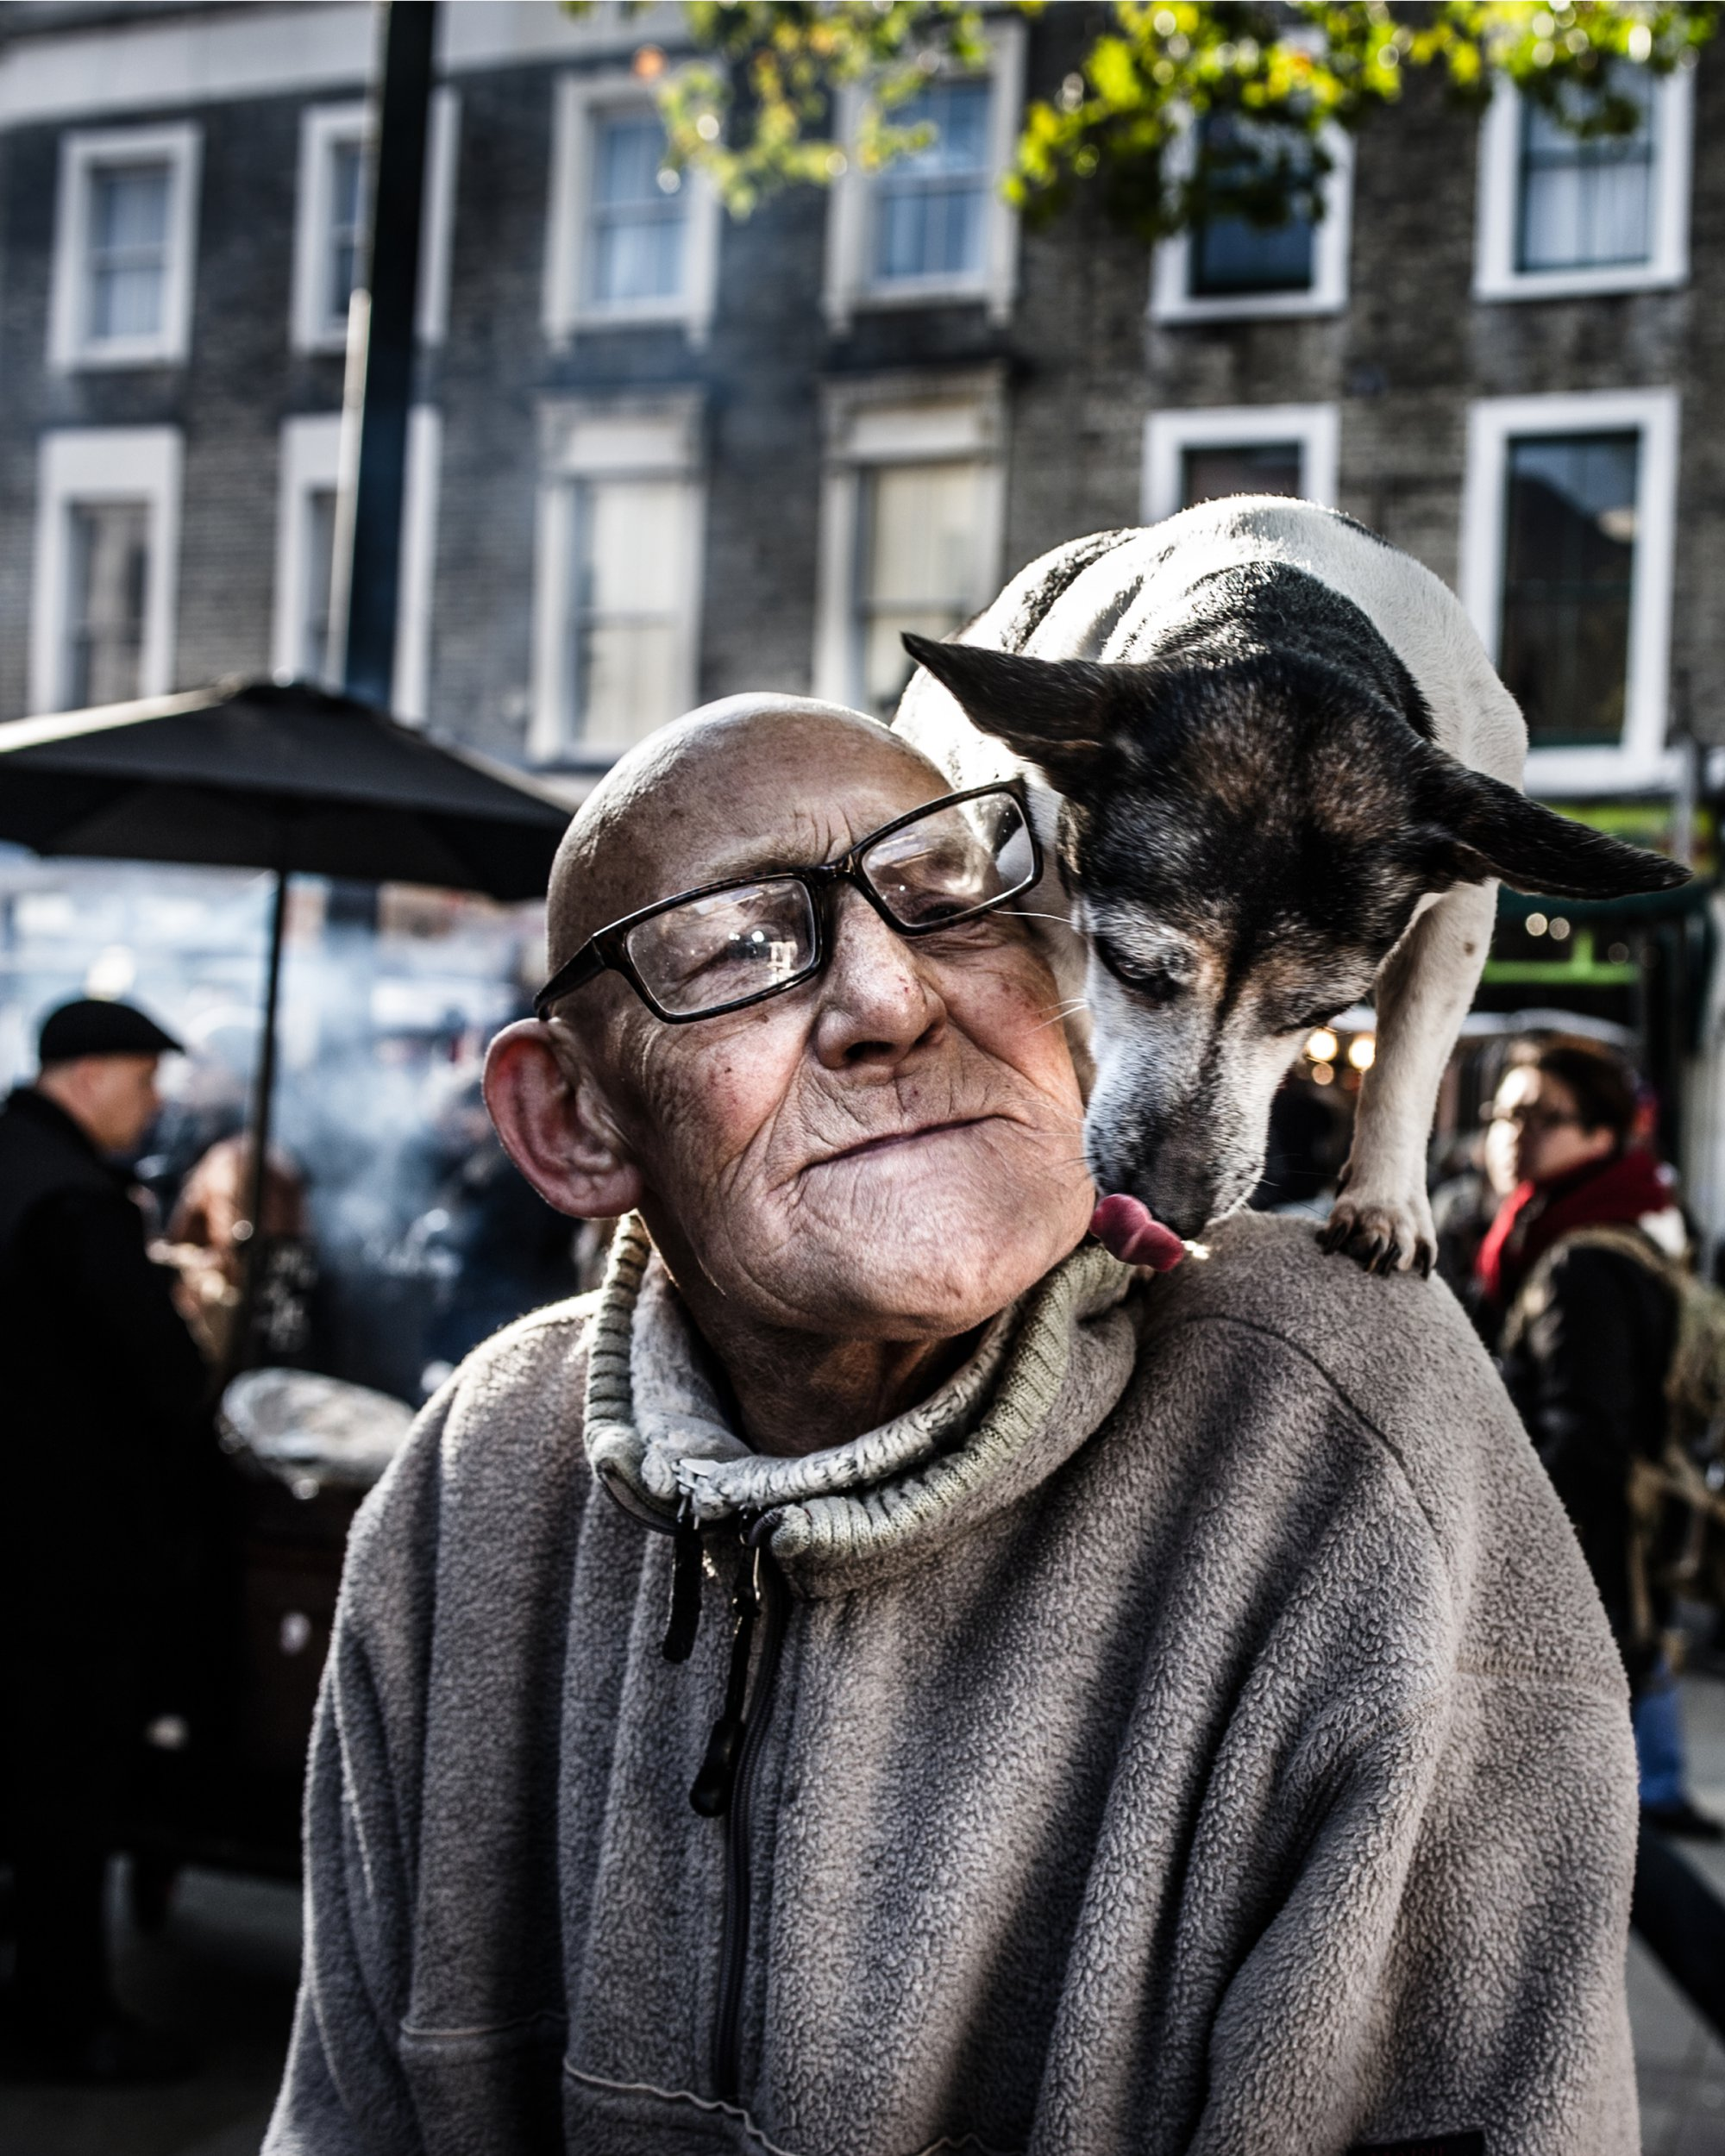 This is Britain's best street photography